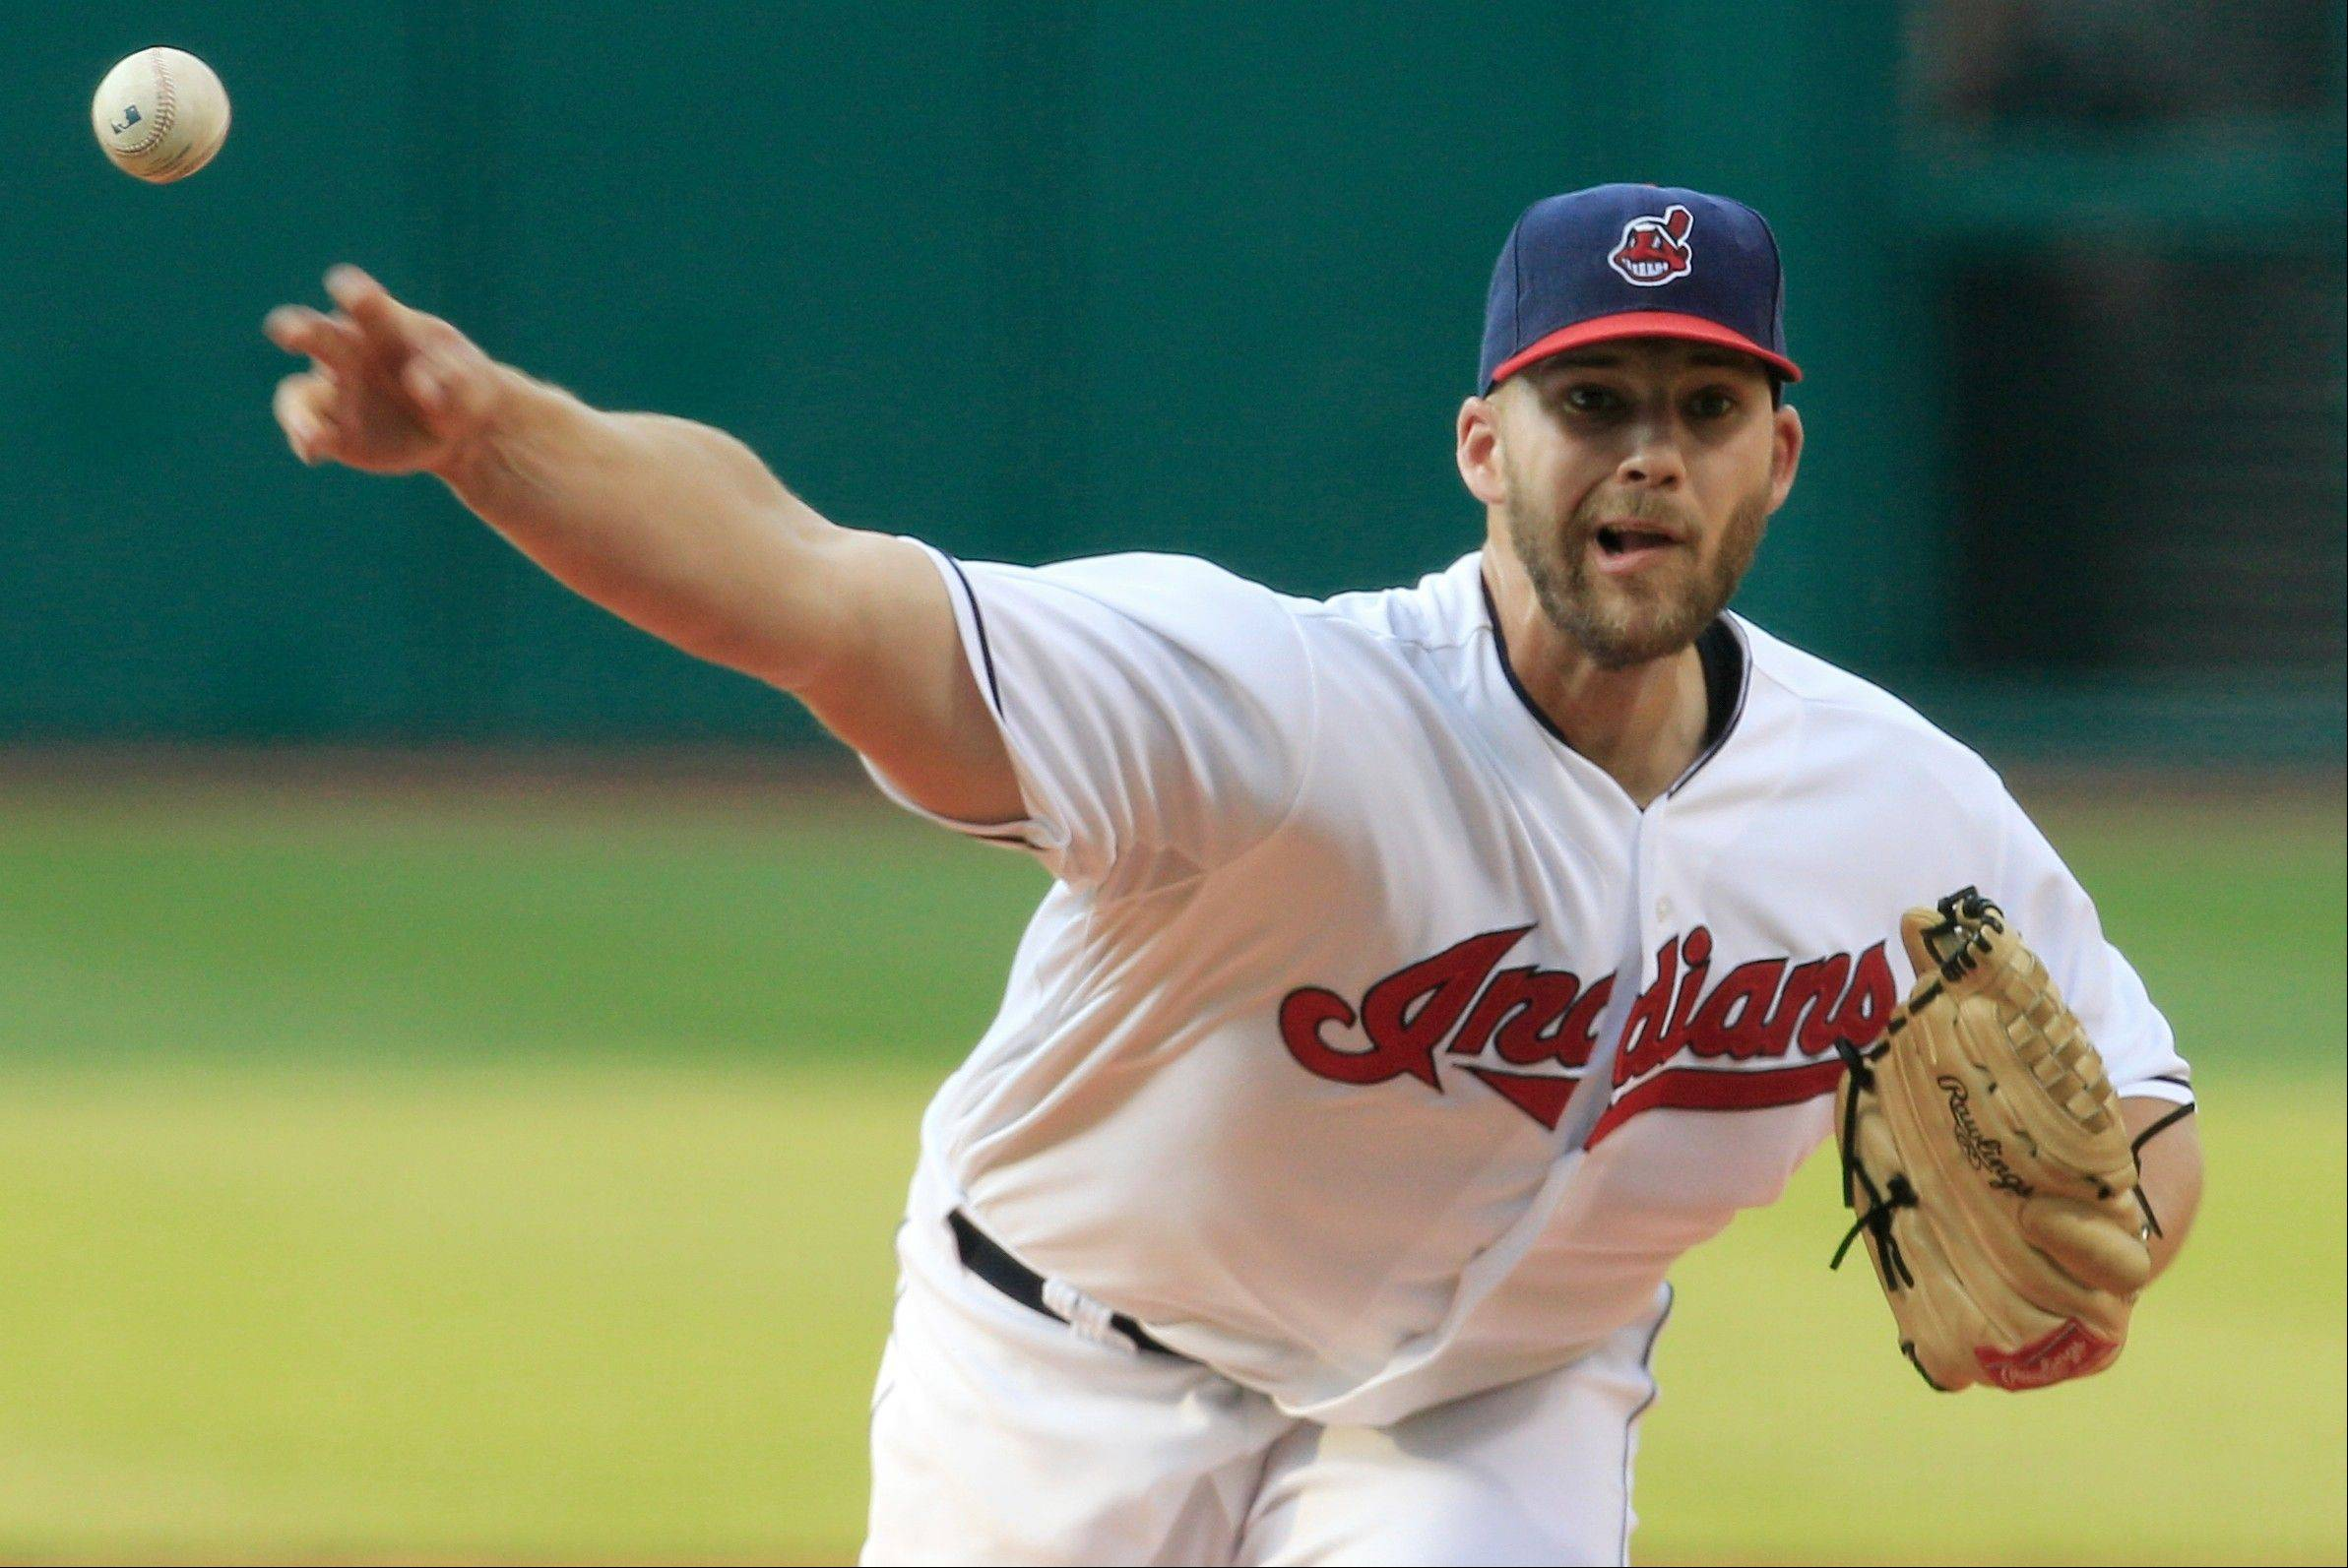 Cleveland's Justin Masterson took a shutout into the eighth inning Wednesday at home against the Reds.